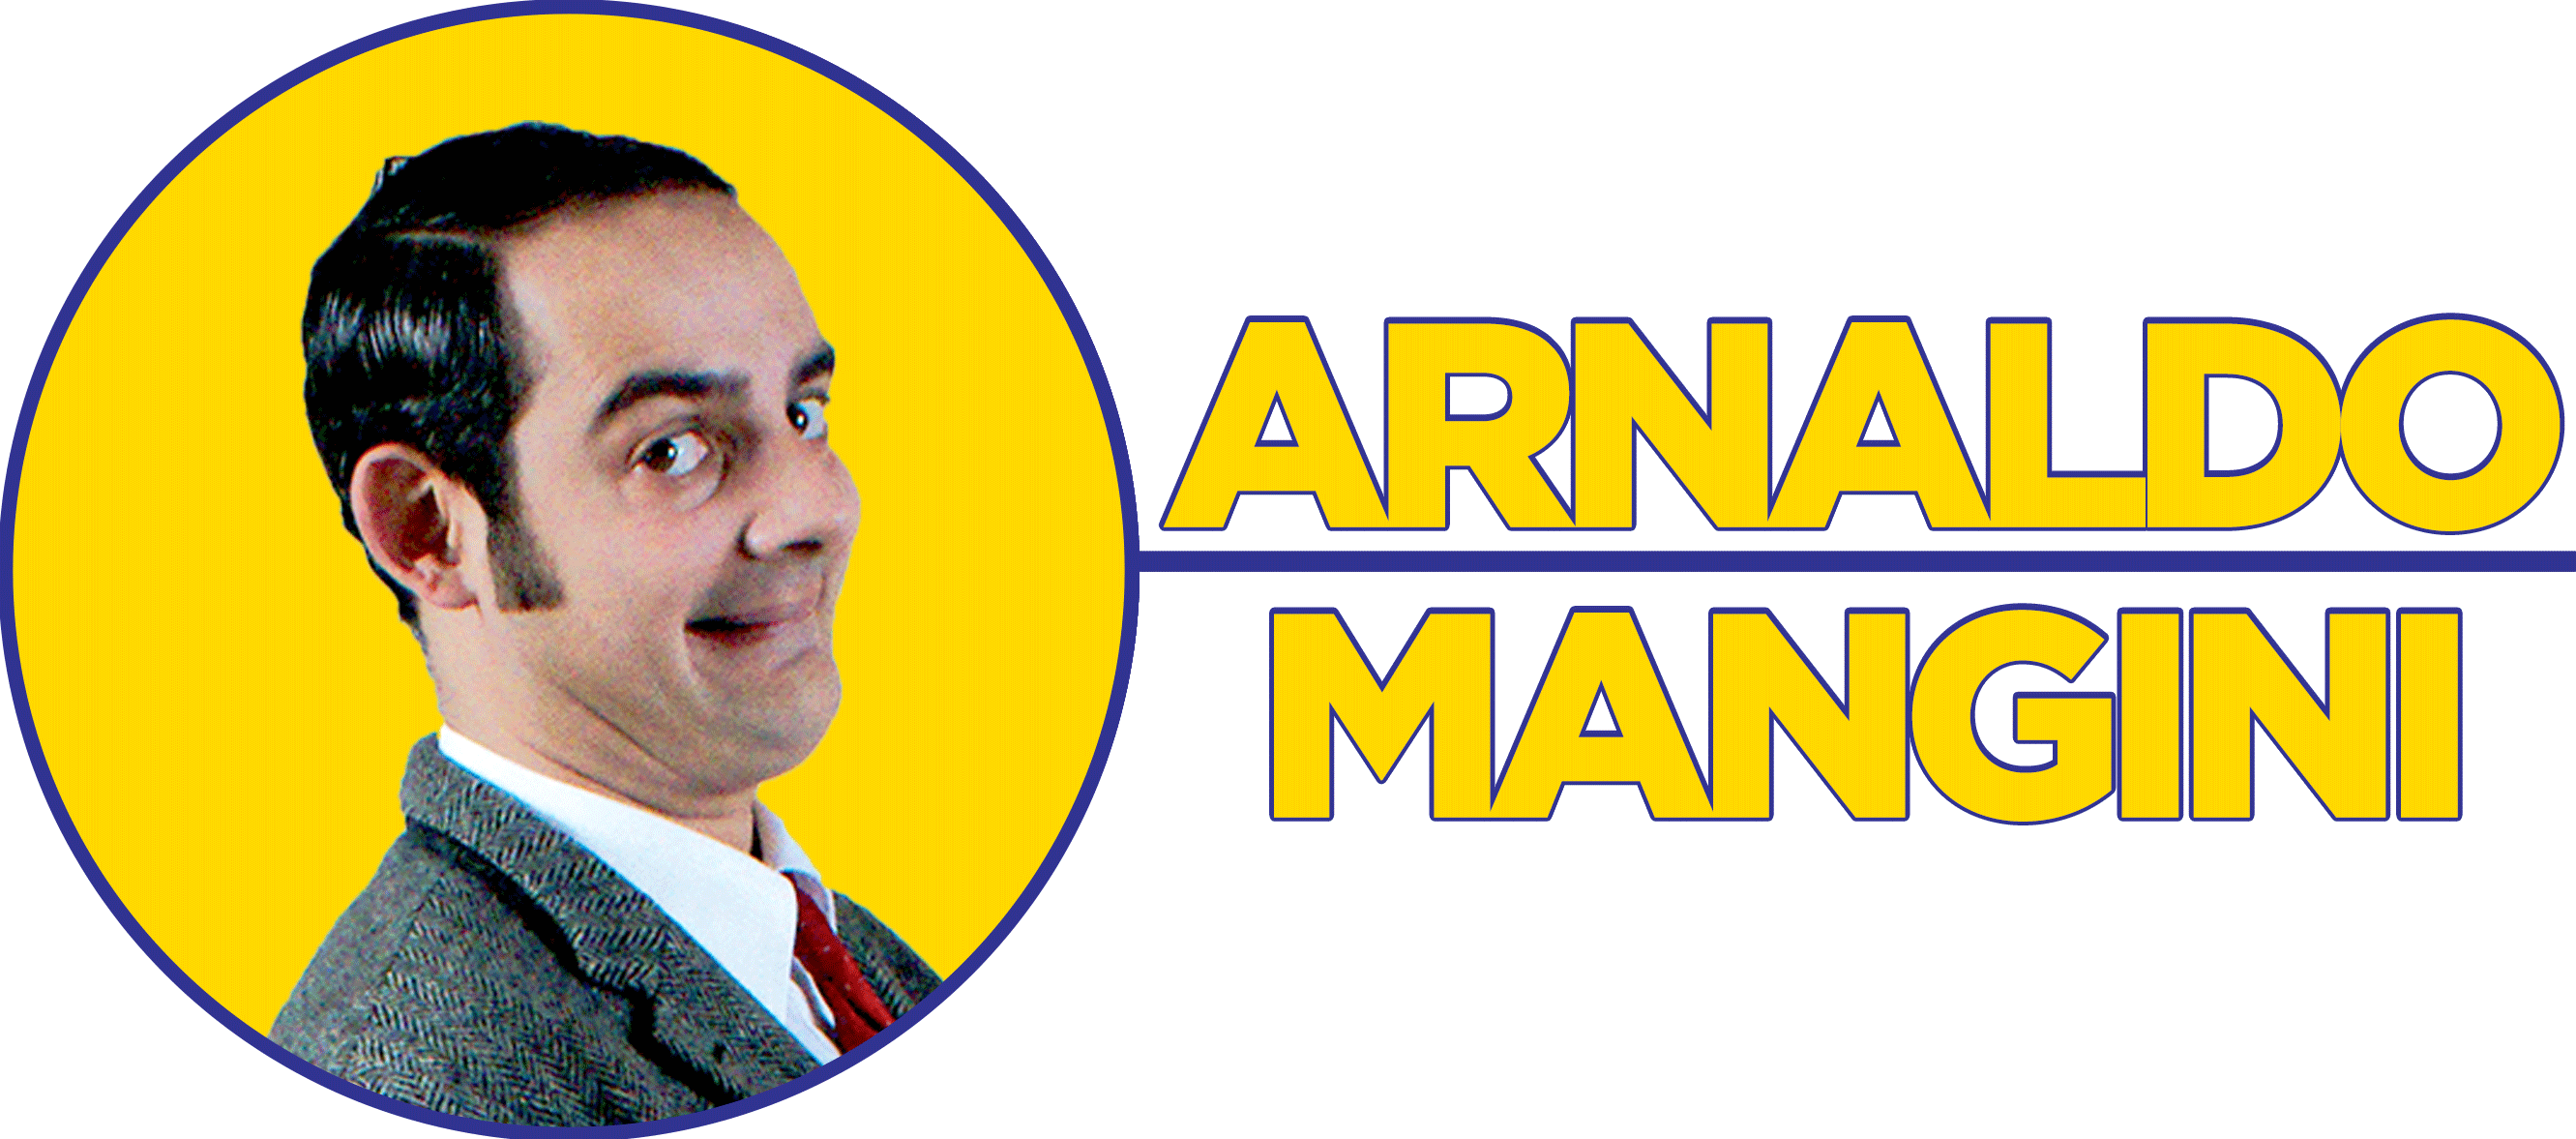 tirana Archivi - Arnaldo Mangini Clown Actor / MrBean Lookalike